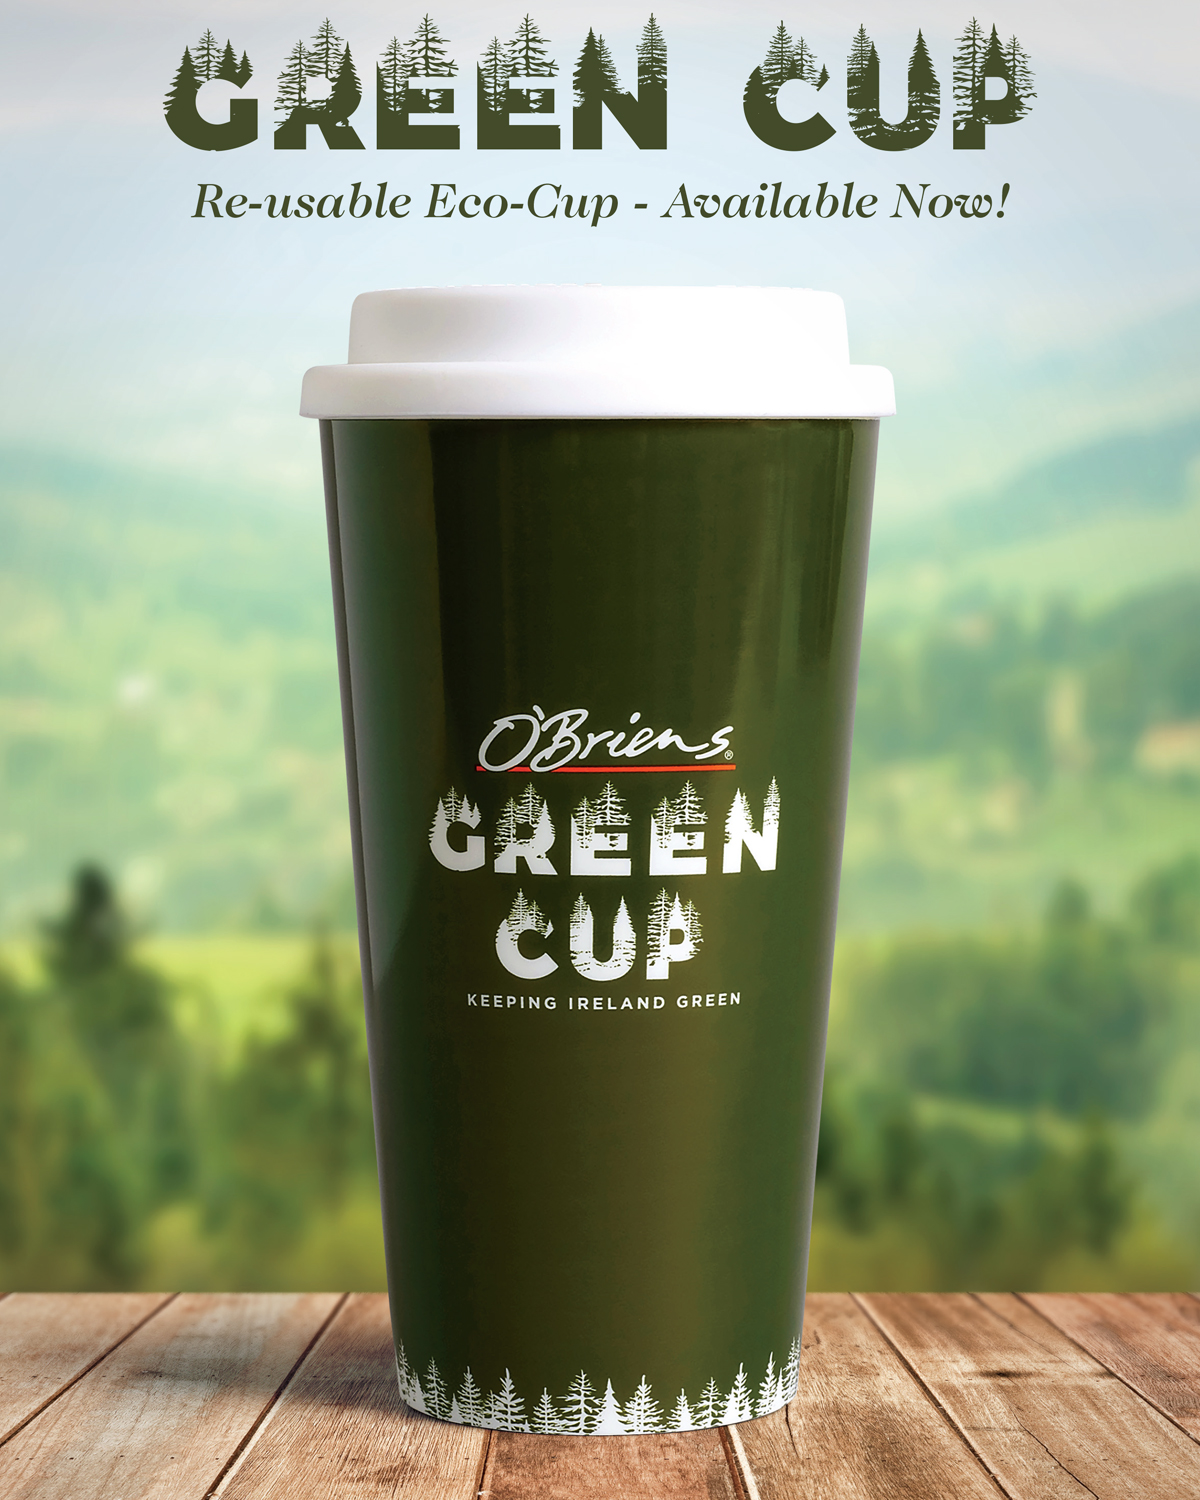 O'Briens Green Re-Usable Cup